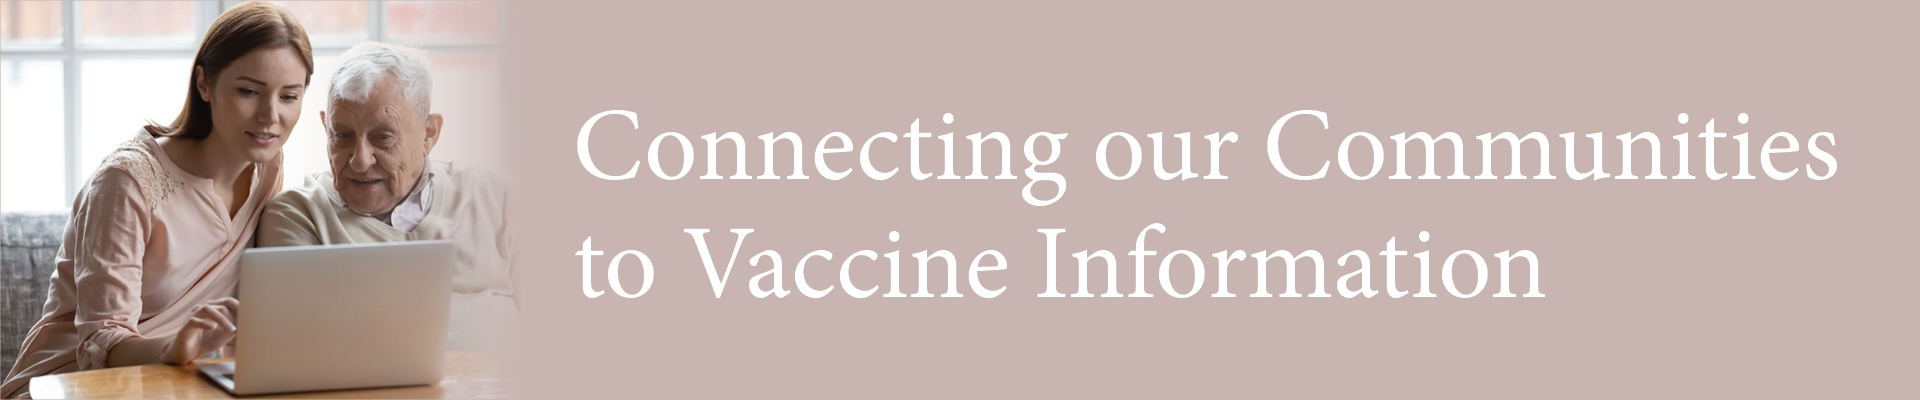 Connectng our Communities to Vaccine Information Banner